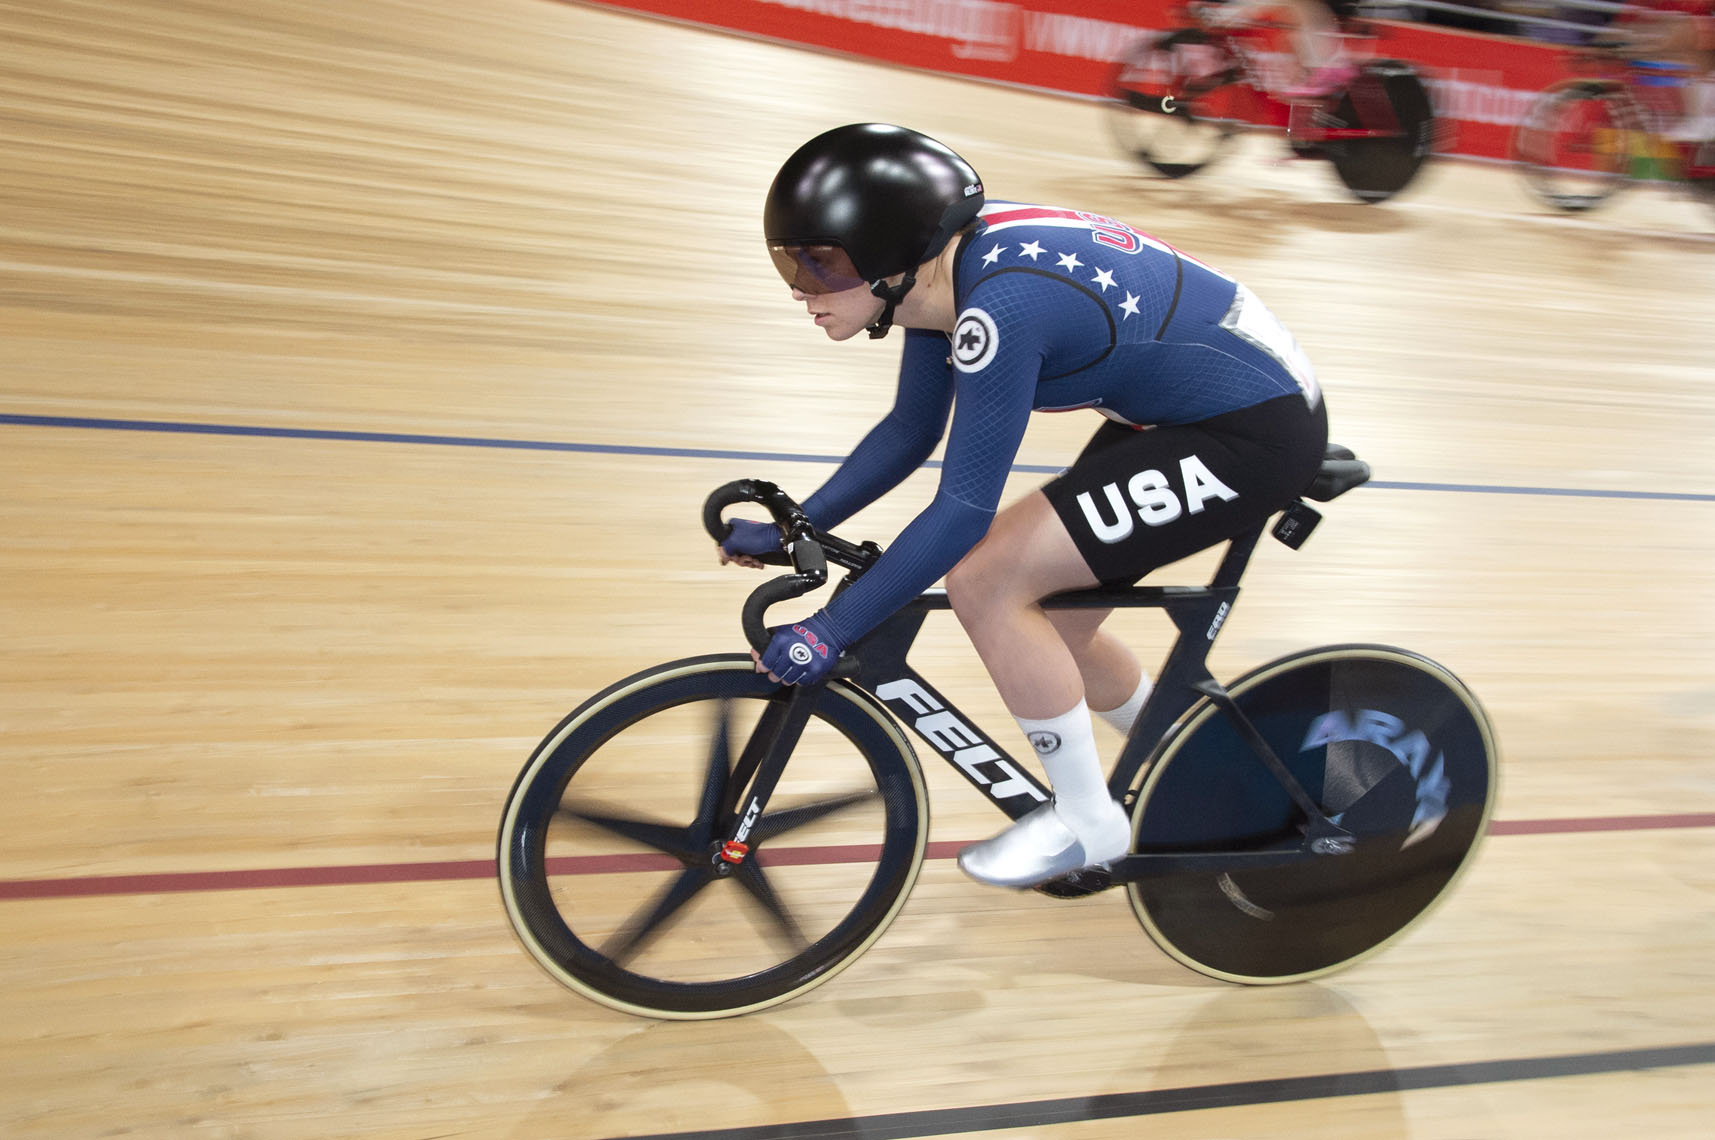 Valente, Omnium, UCI Track Cycling World Championships, 2020